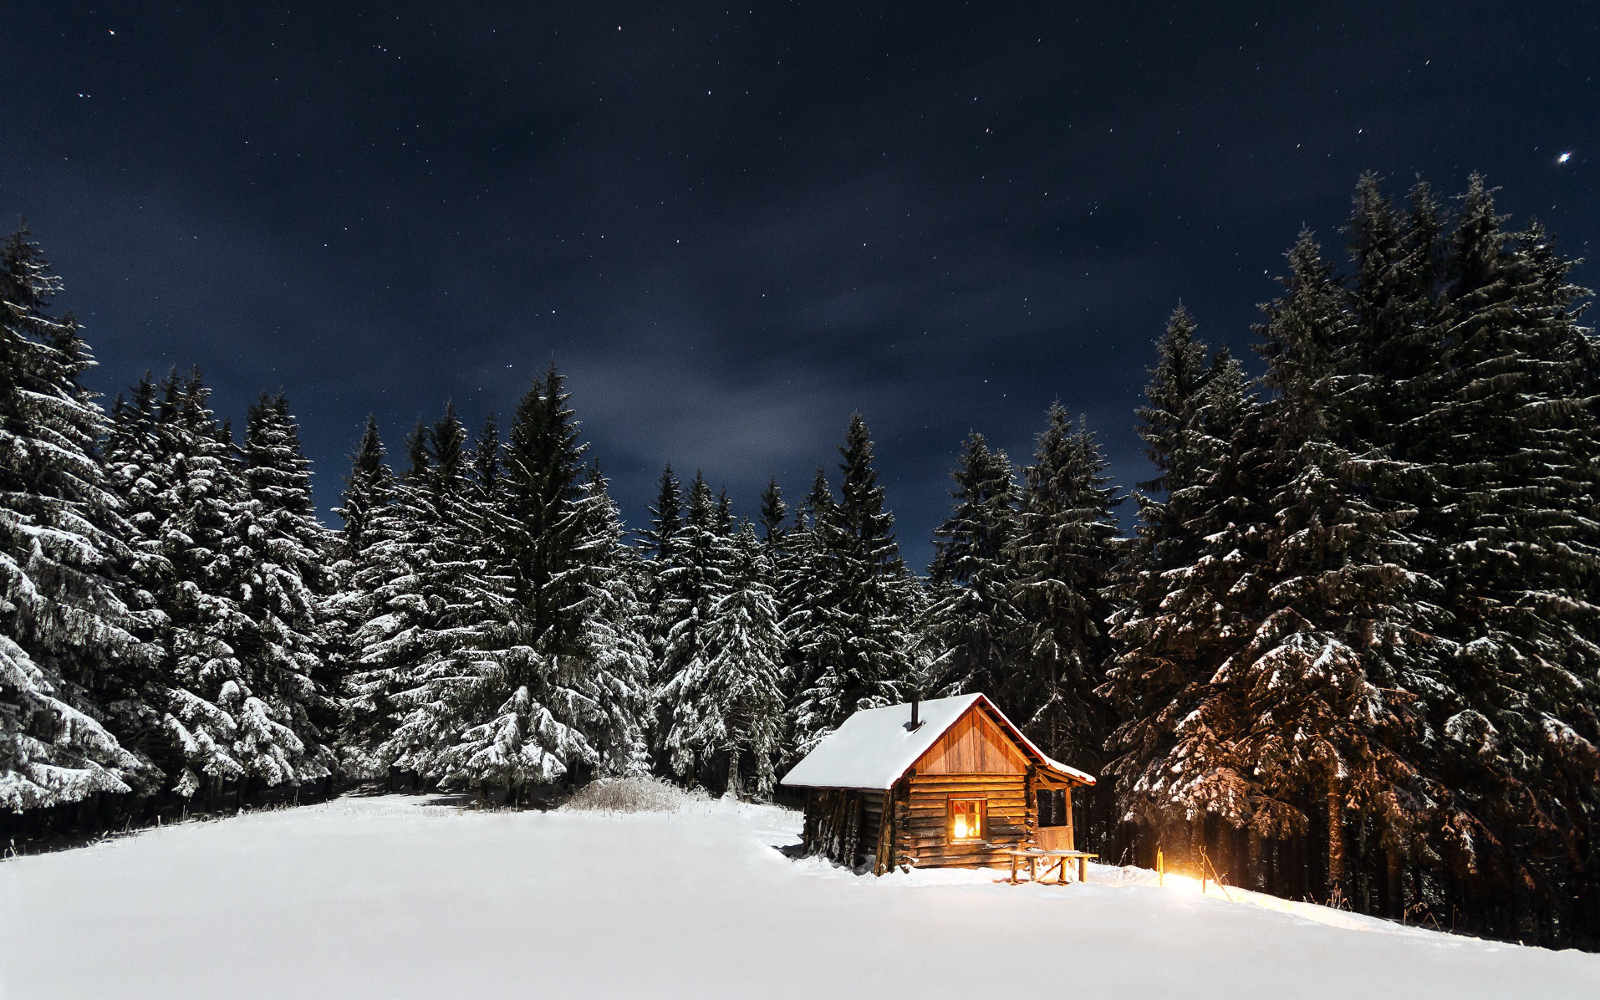 Remote winter cabin in the snow, photo by Paul Itkin